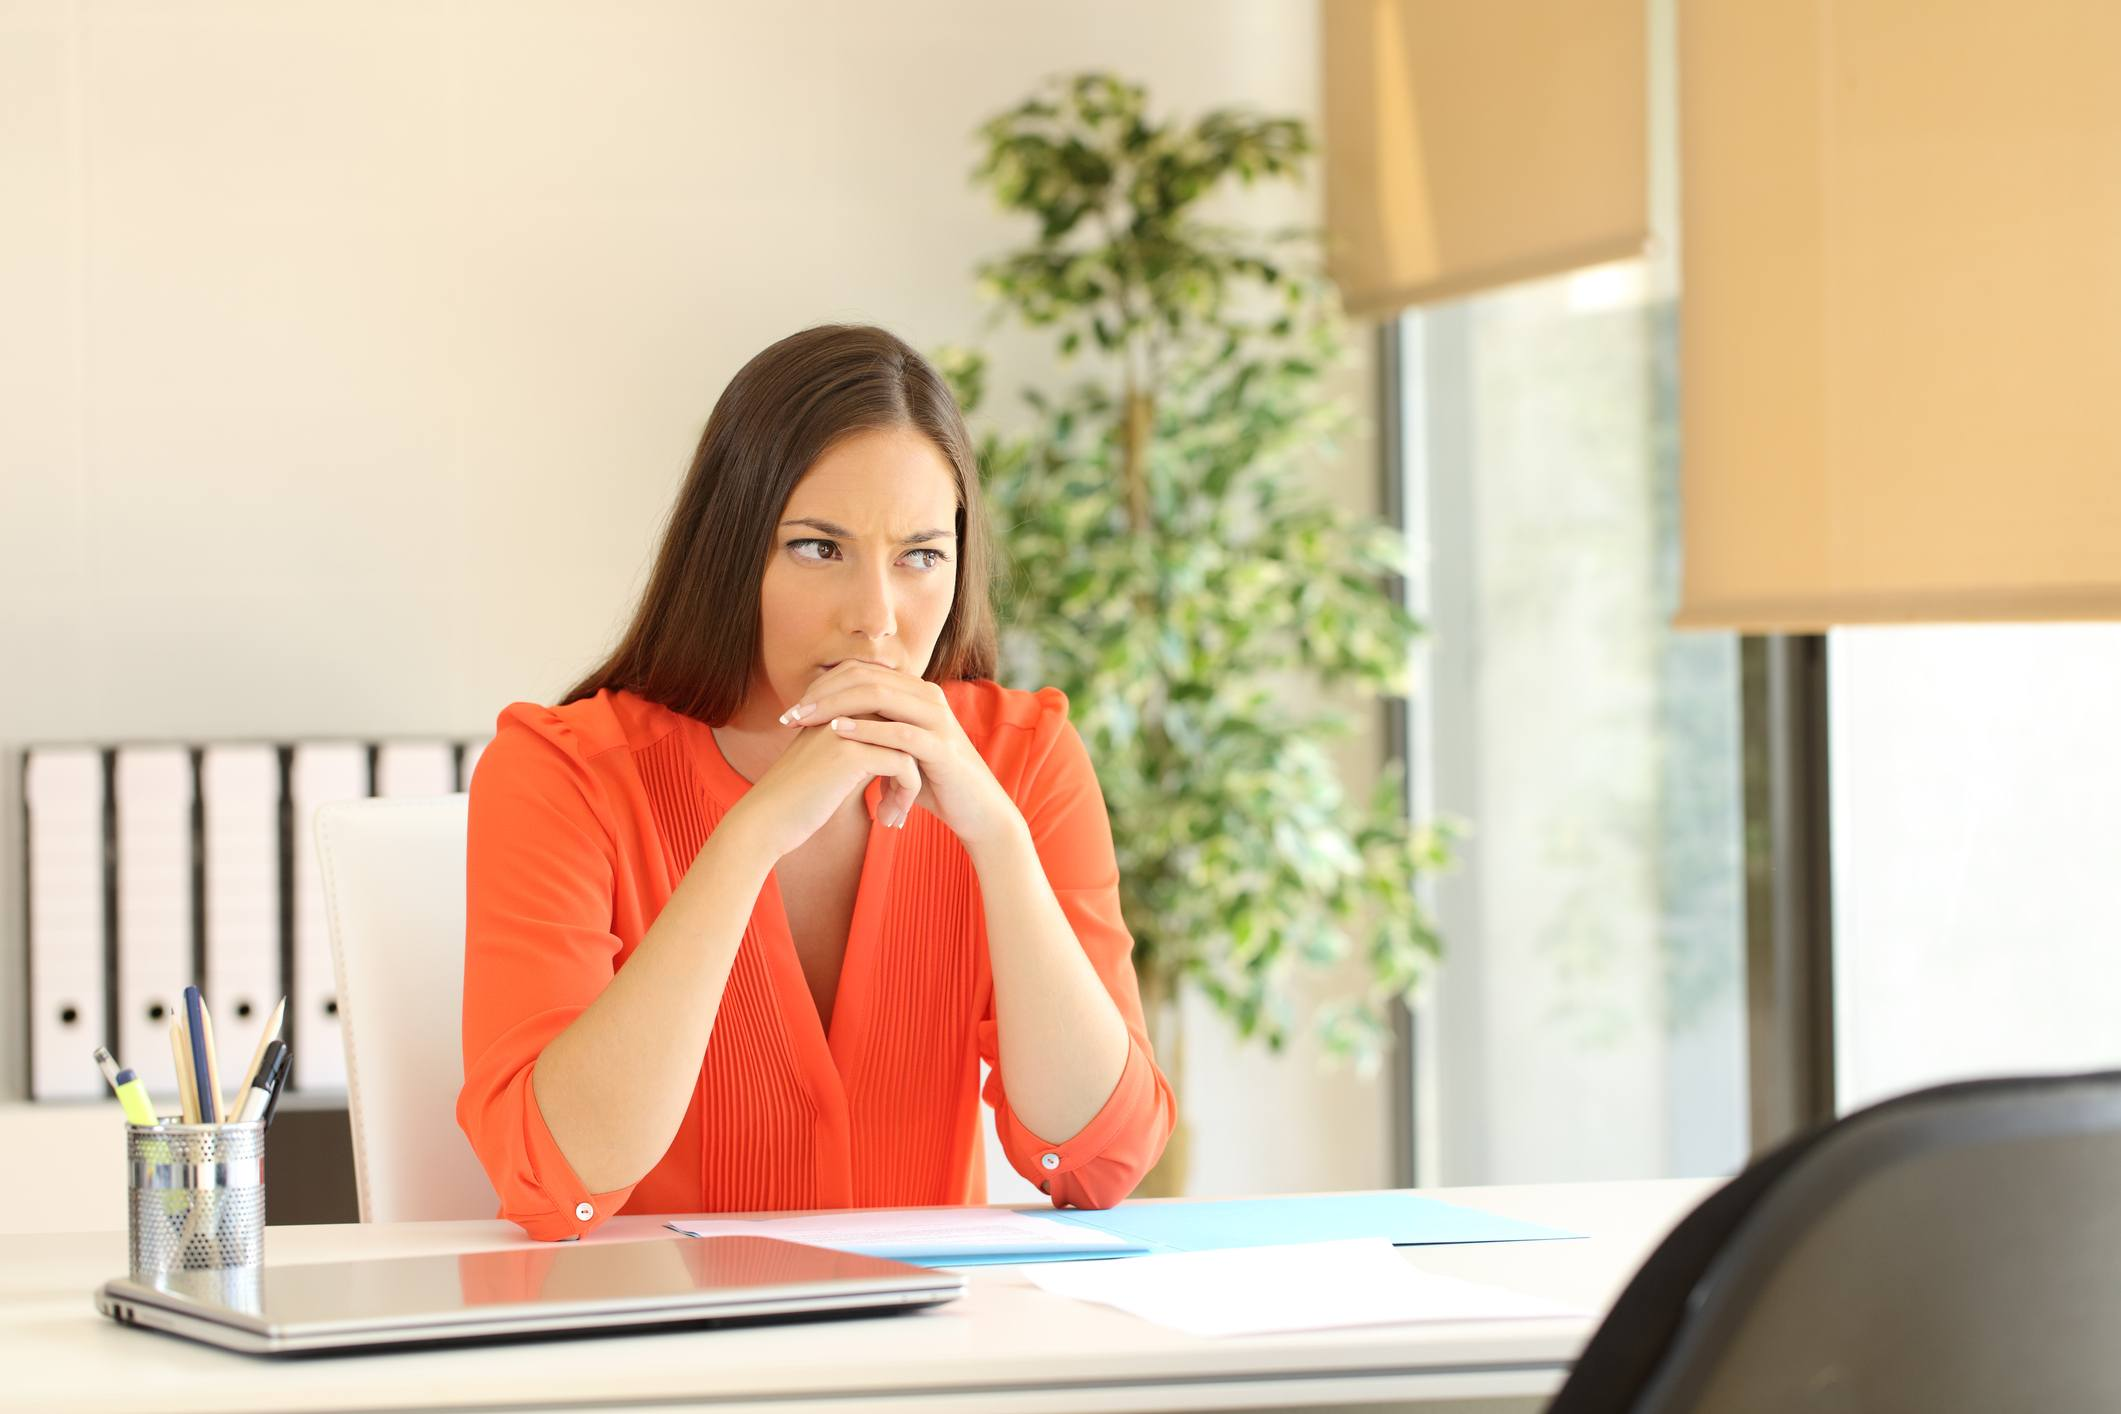 Thoughtful and nervous woman waiting for the interviewer during a job interview in a desk at office